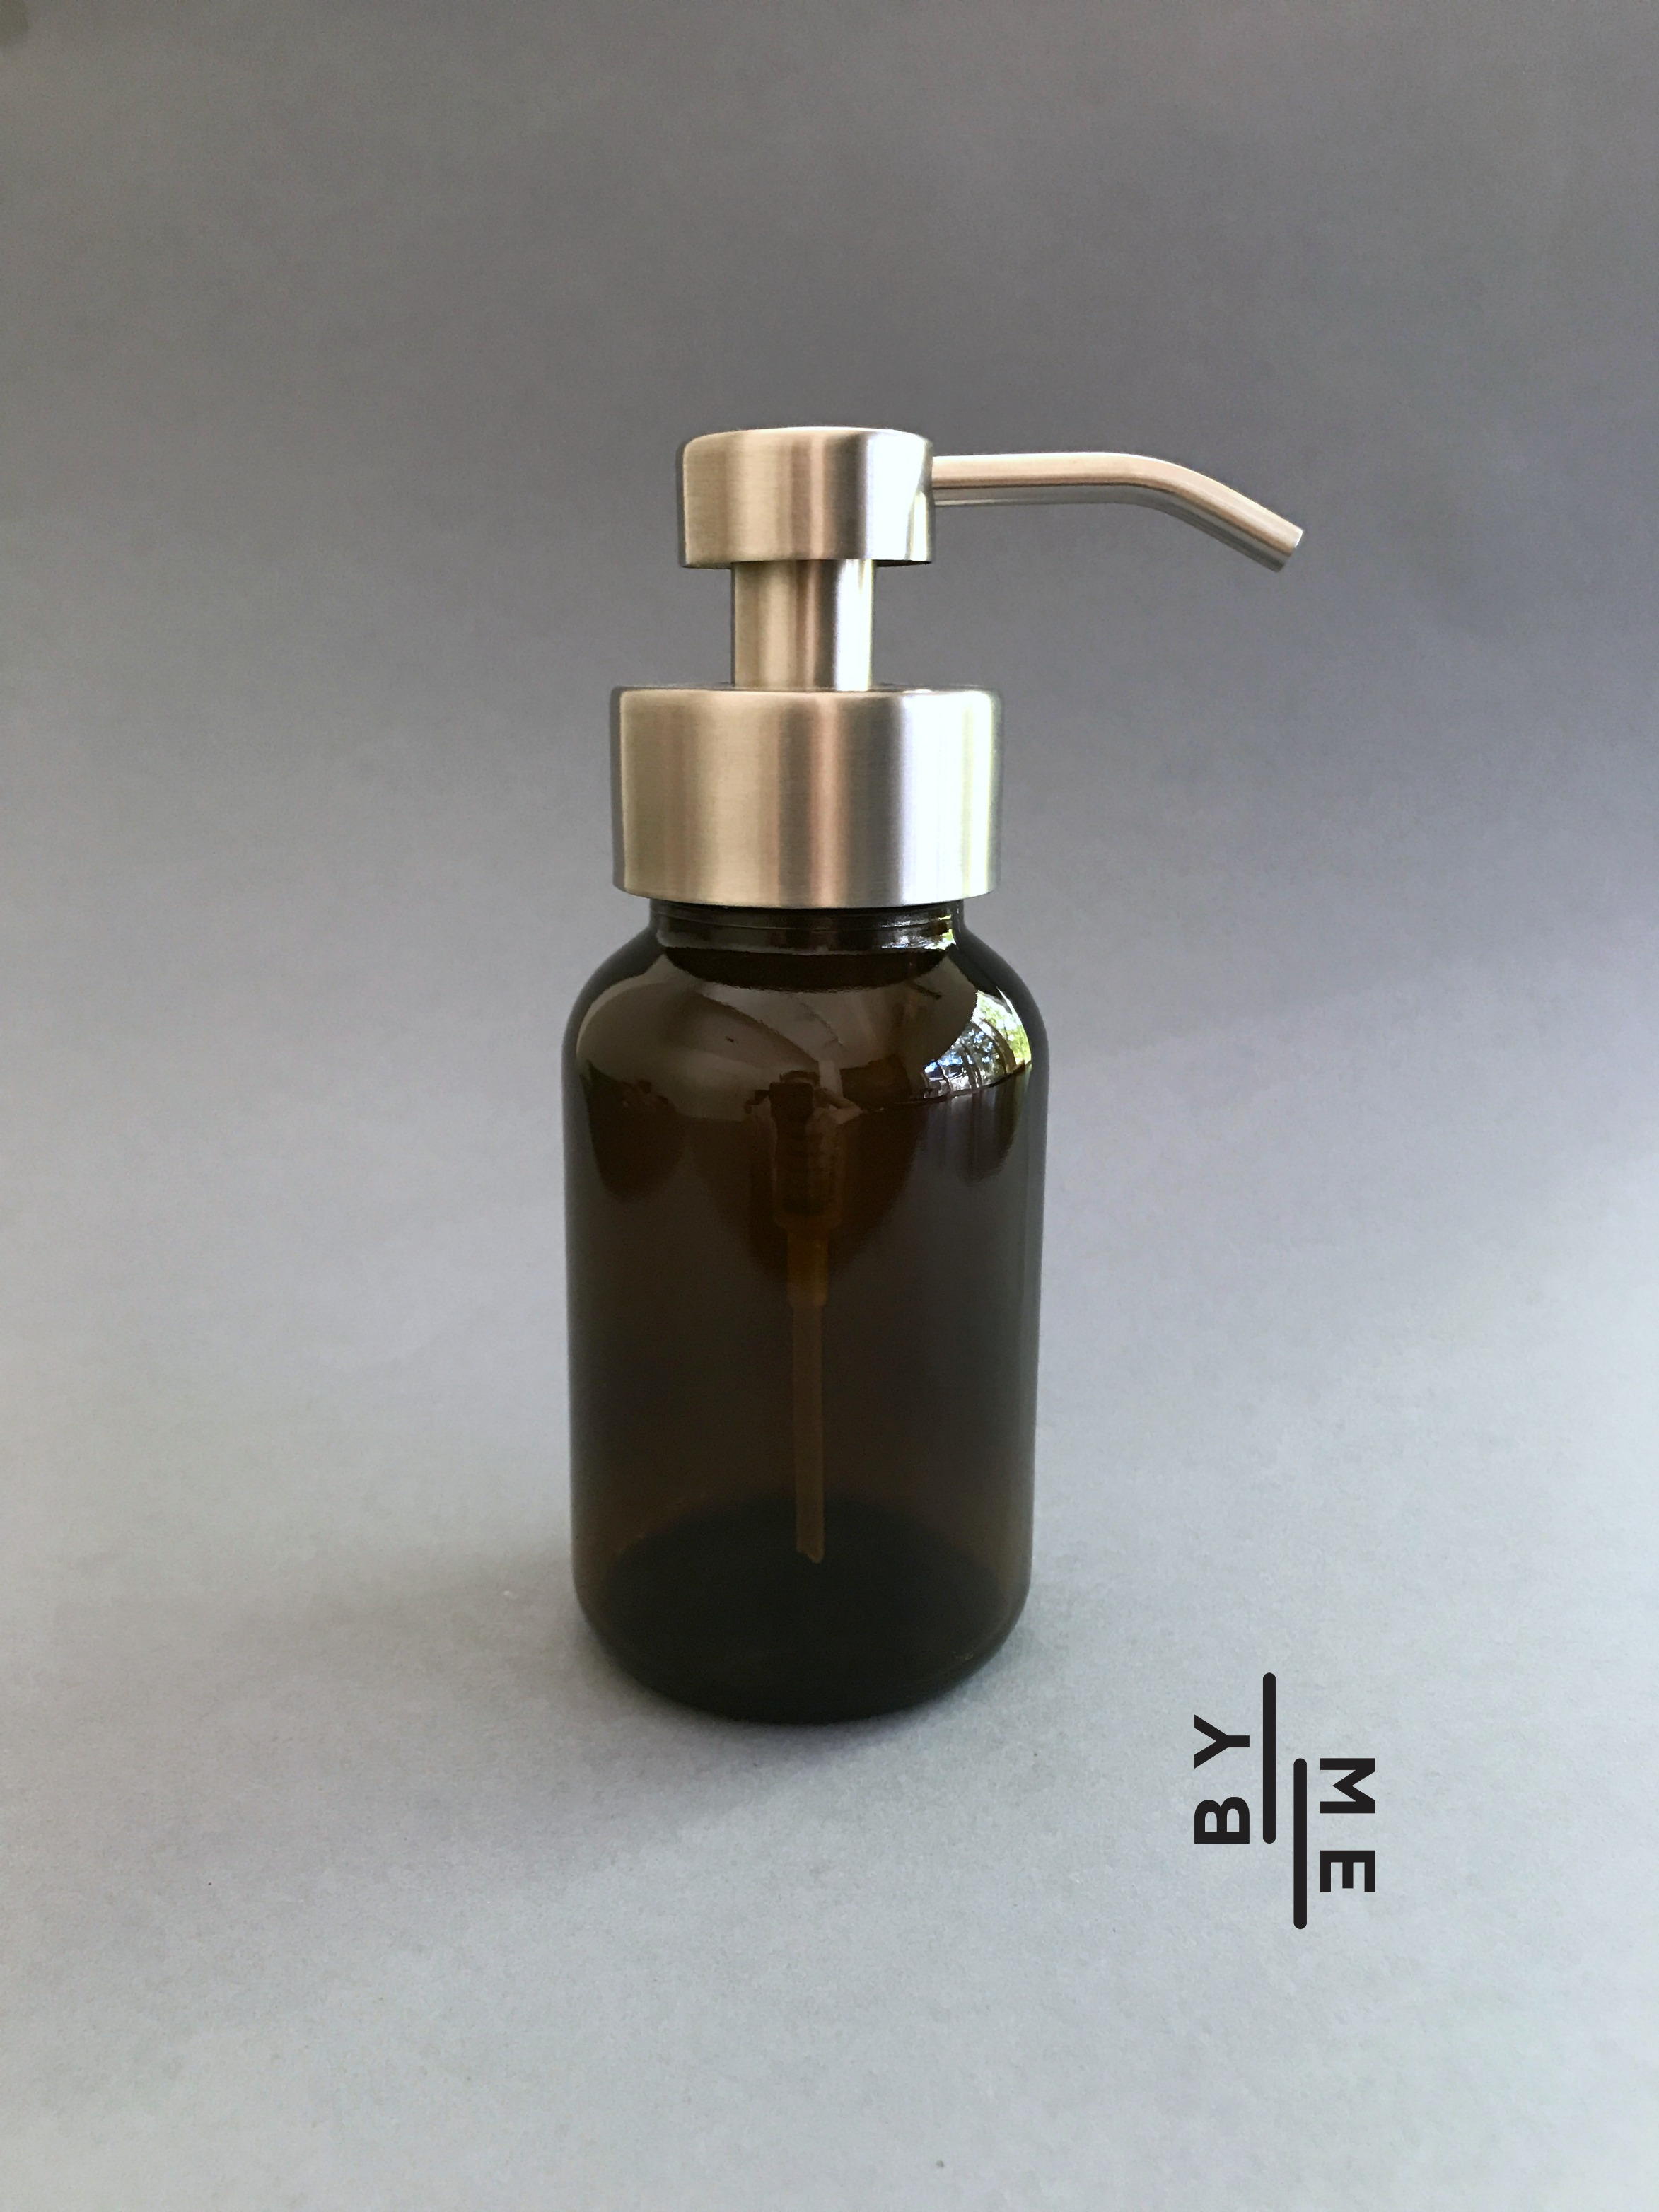 ByMe amber glass foaming soap pump